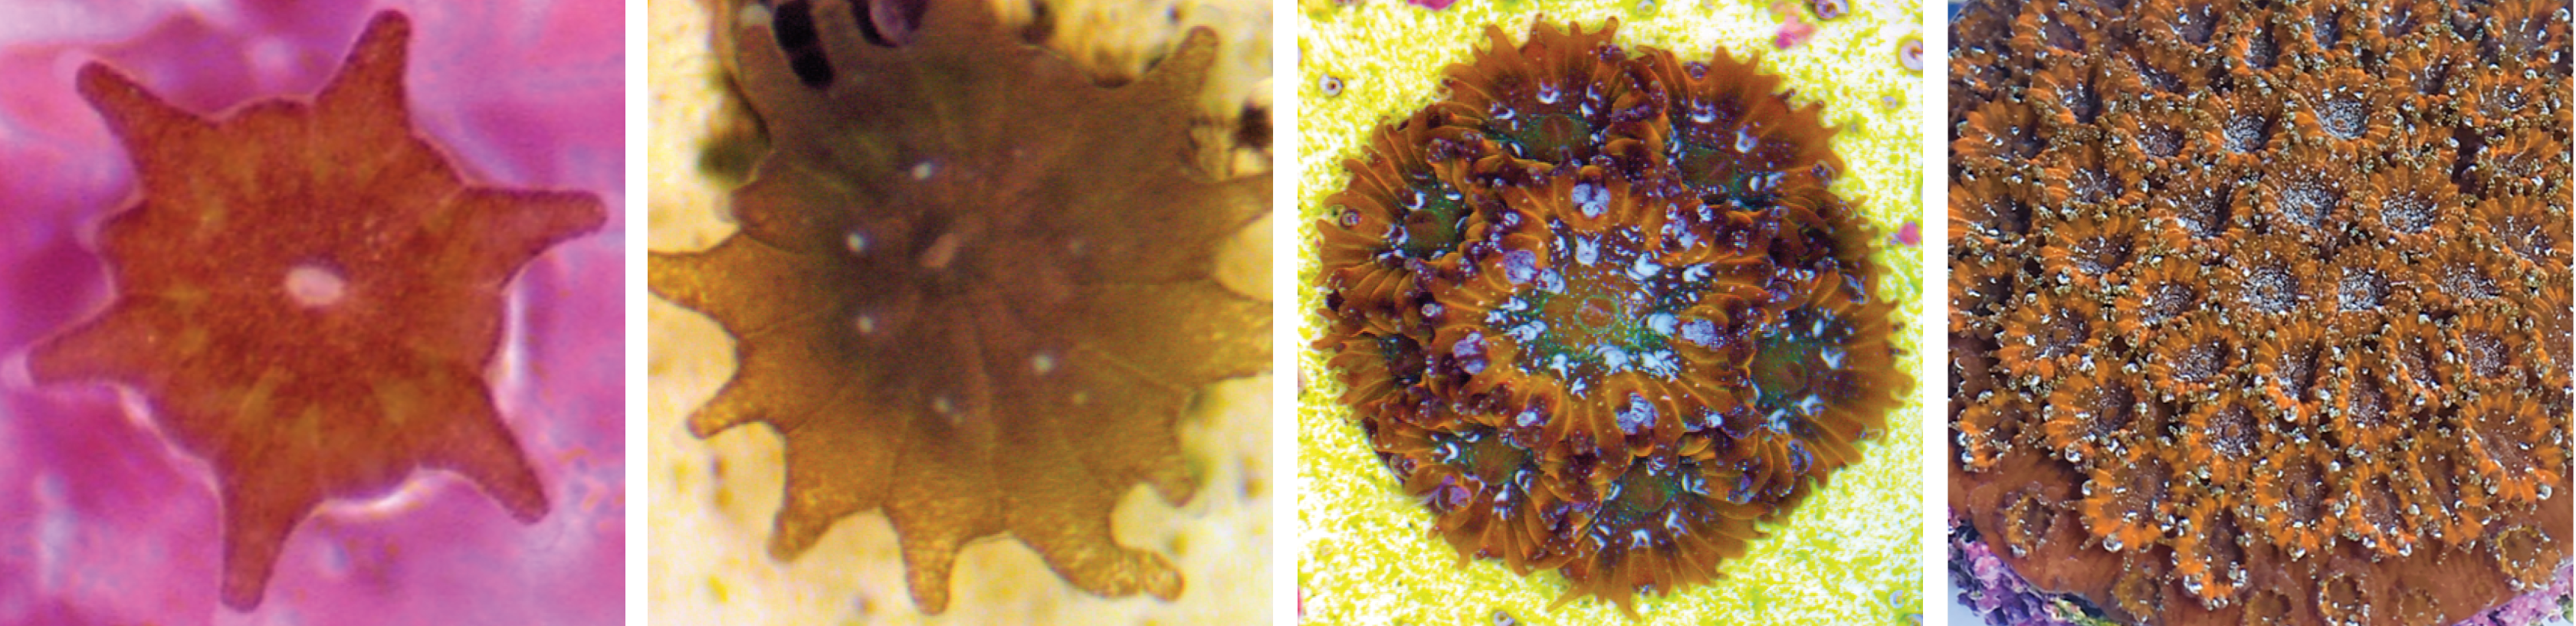 Baby mountainous star corals at different stages of growth